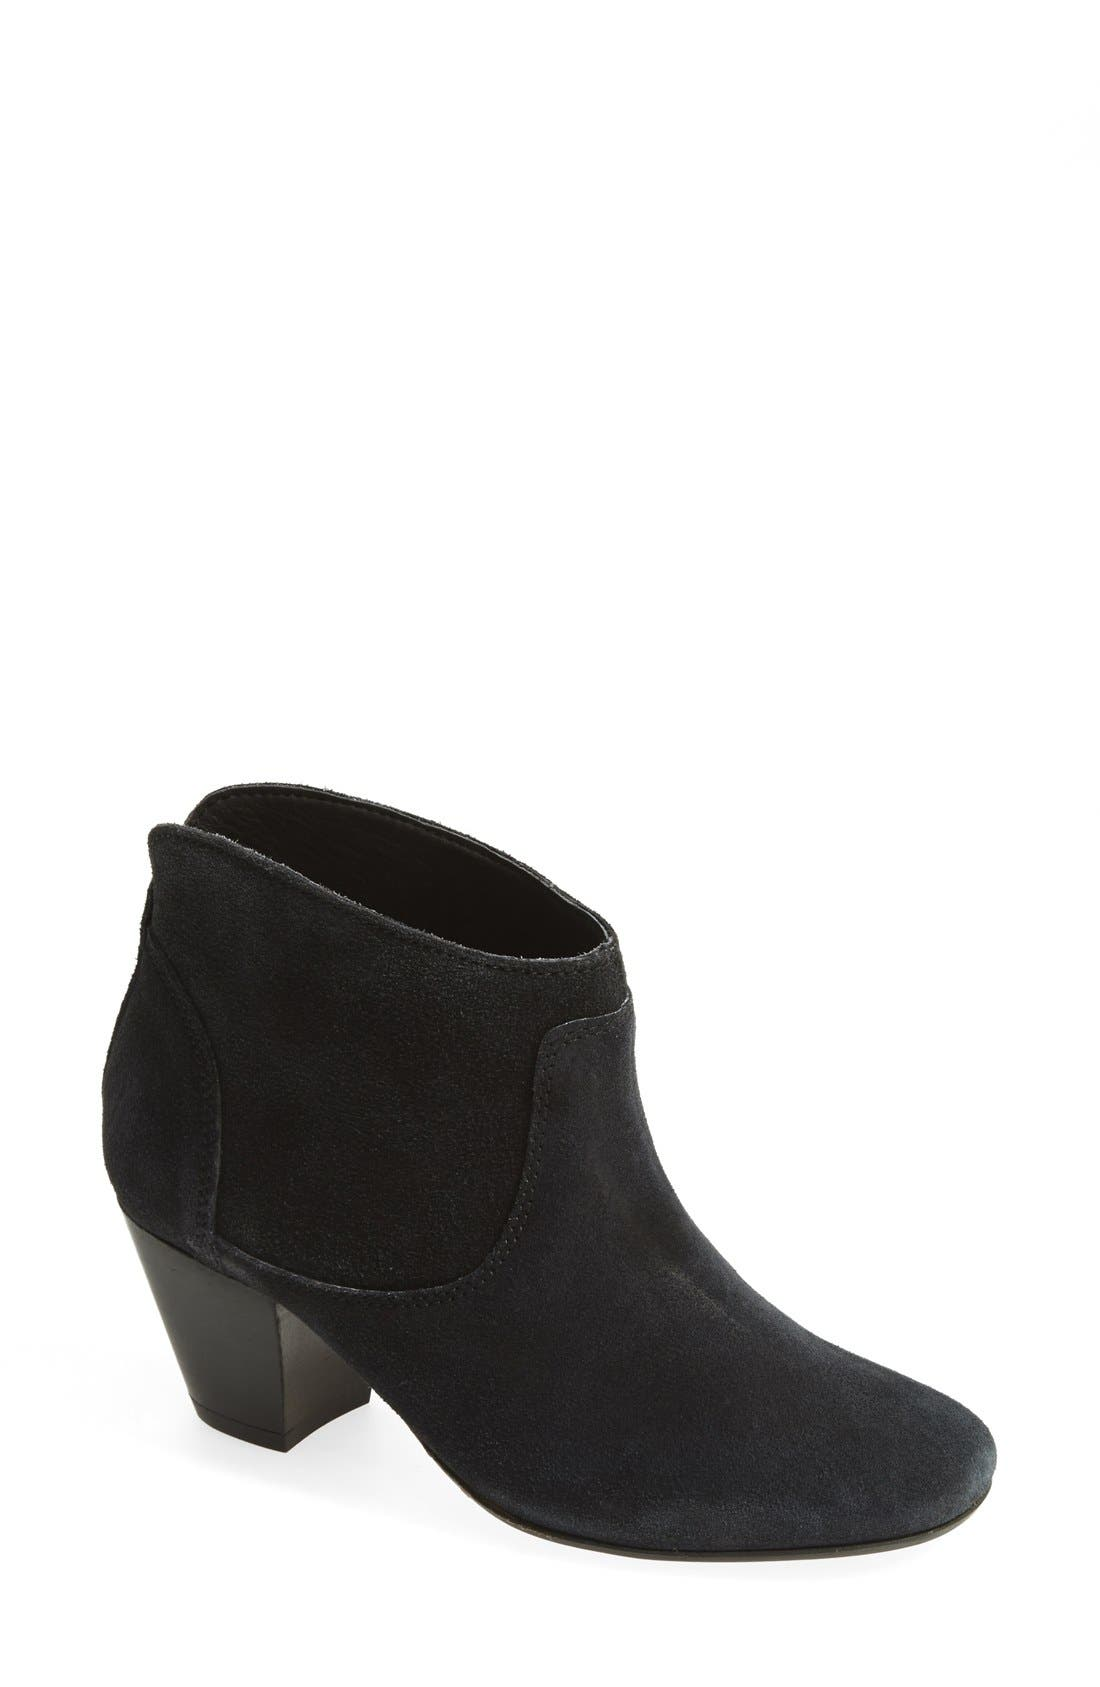 H BY HUDSON, 'Kiver' Suede Bootie, Main thumbnail 1, color, 001